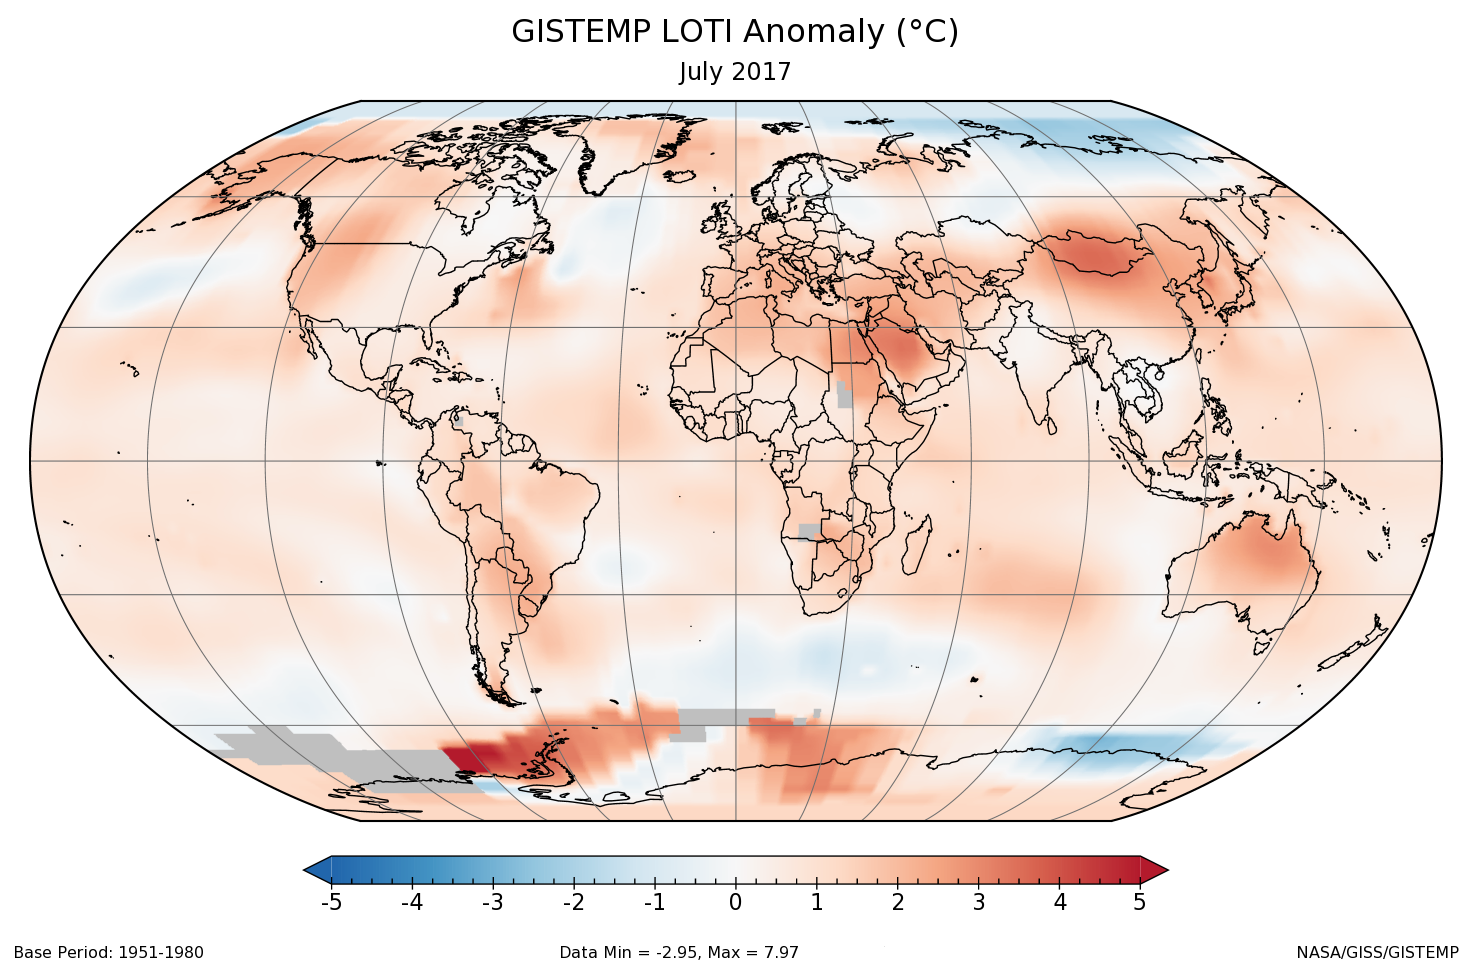 Global goal home 1 new home 1 new kids 1 global goal pro 1 - A Global Map Of The June 2017 Loti Land Ocean Temperature Index Anomaly Relative To The 1951 1980 June Average